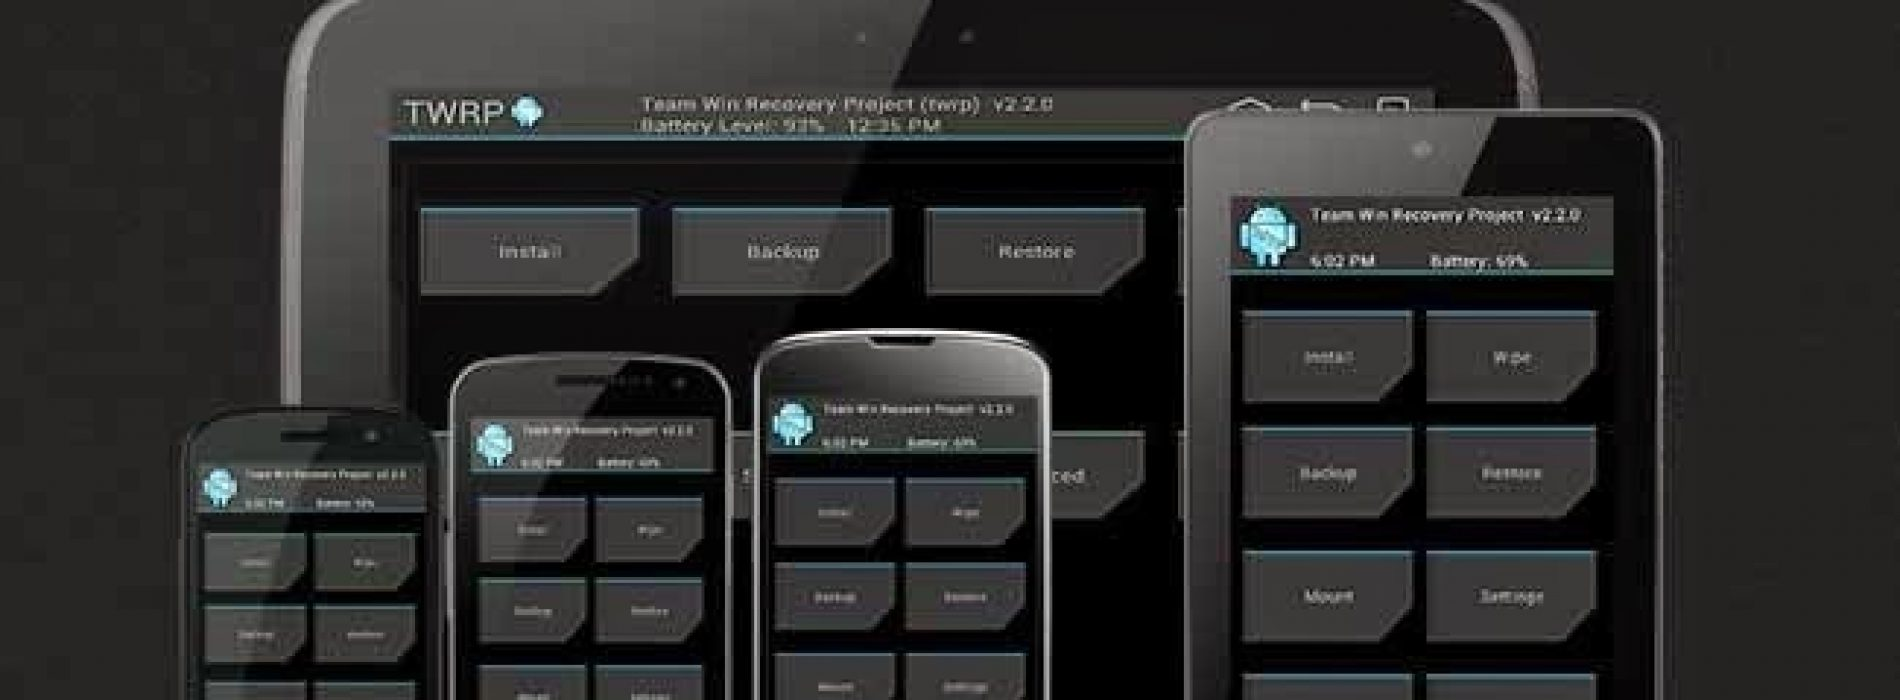 RECOVERY] [TWRP] Official TWRP Custom recovery installation